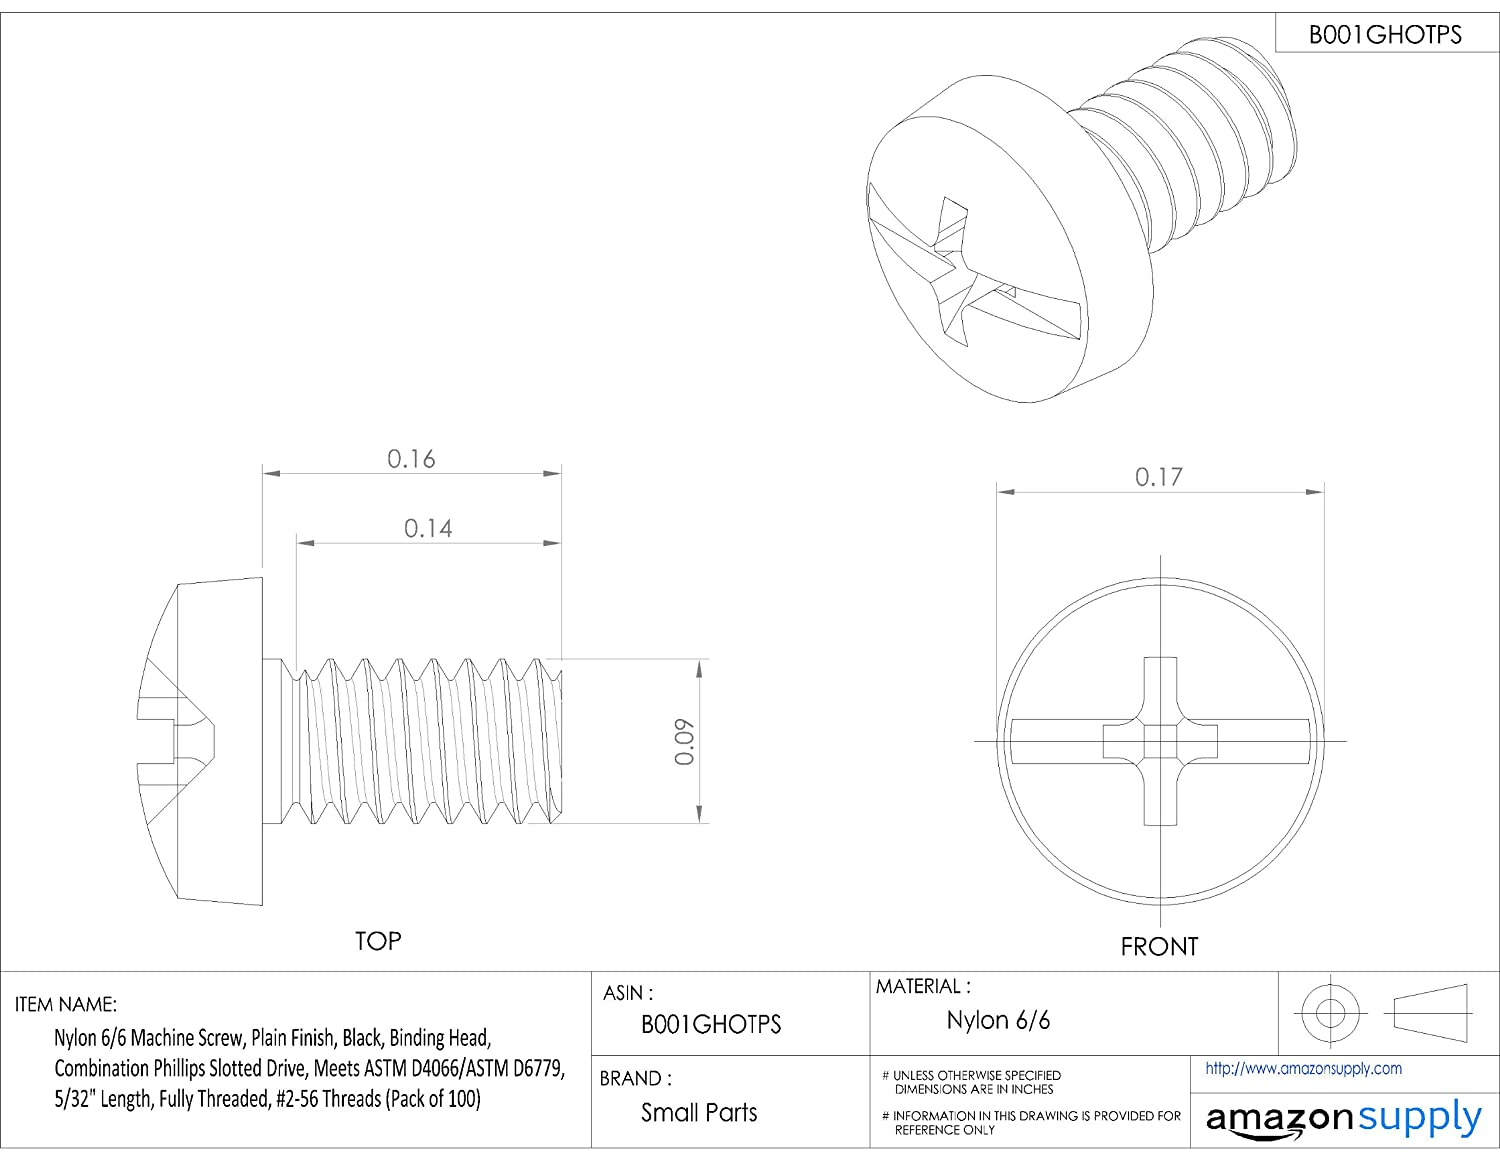 Nylon 6/6 Machine Screw, Plain Finish, Black, Binding Head, Combination Phillips Slotted Drive, Meets ASTM D4066/ASTM D6779, 5/32' Length, Fully Threaded, 2-56 Threads (Pack of 100) 5/32 Length Small Parts Inc 010256CD015B